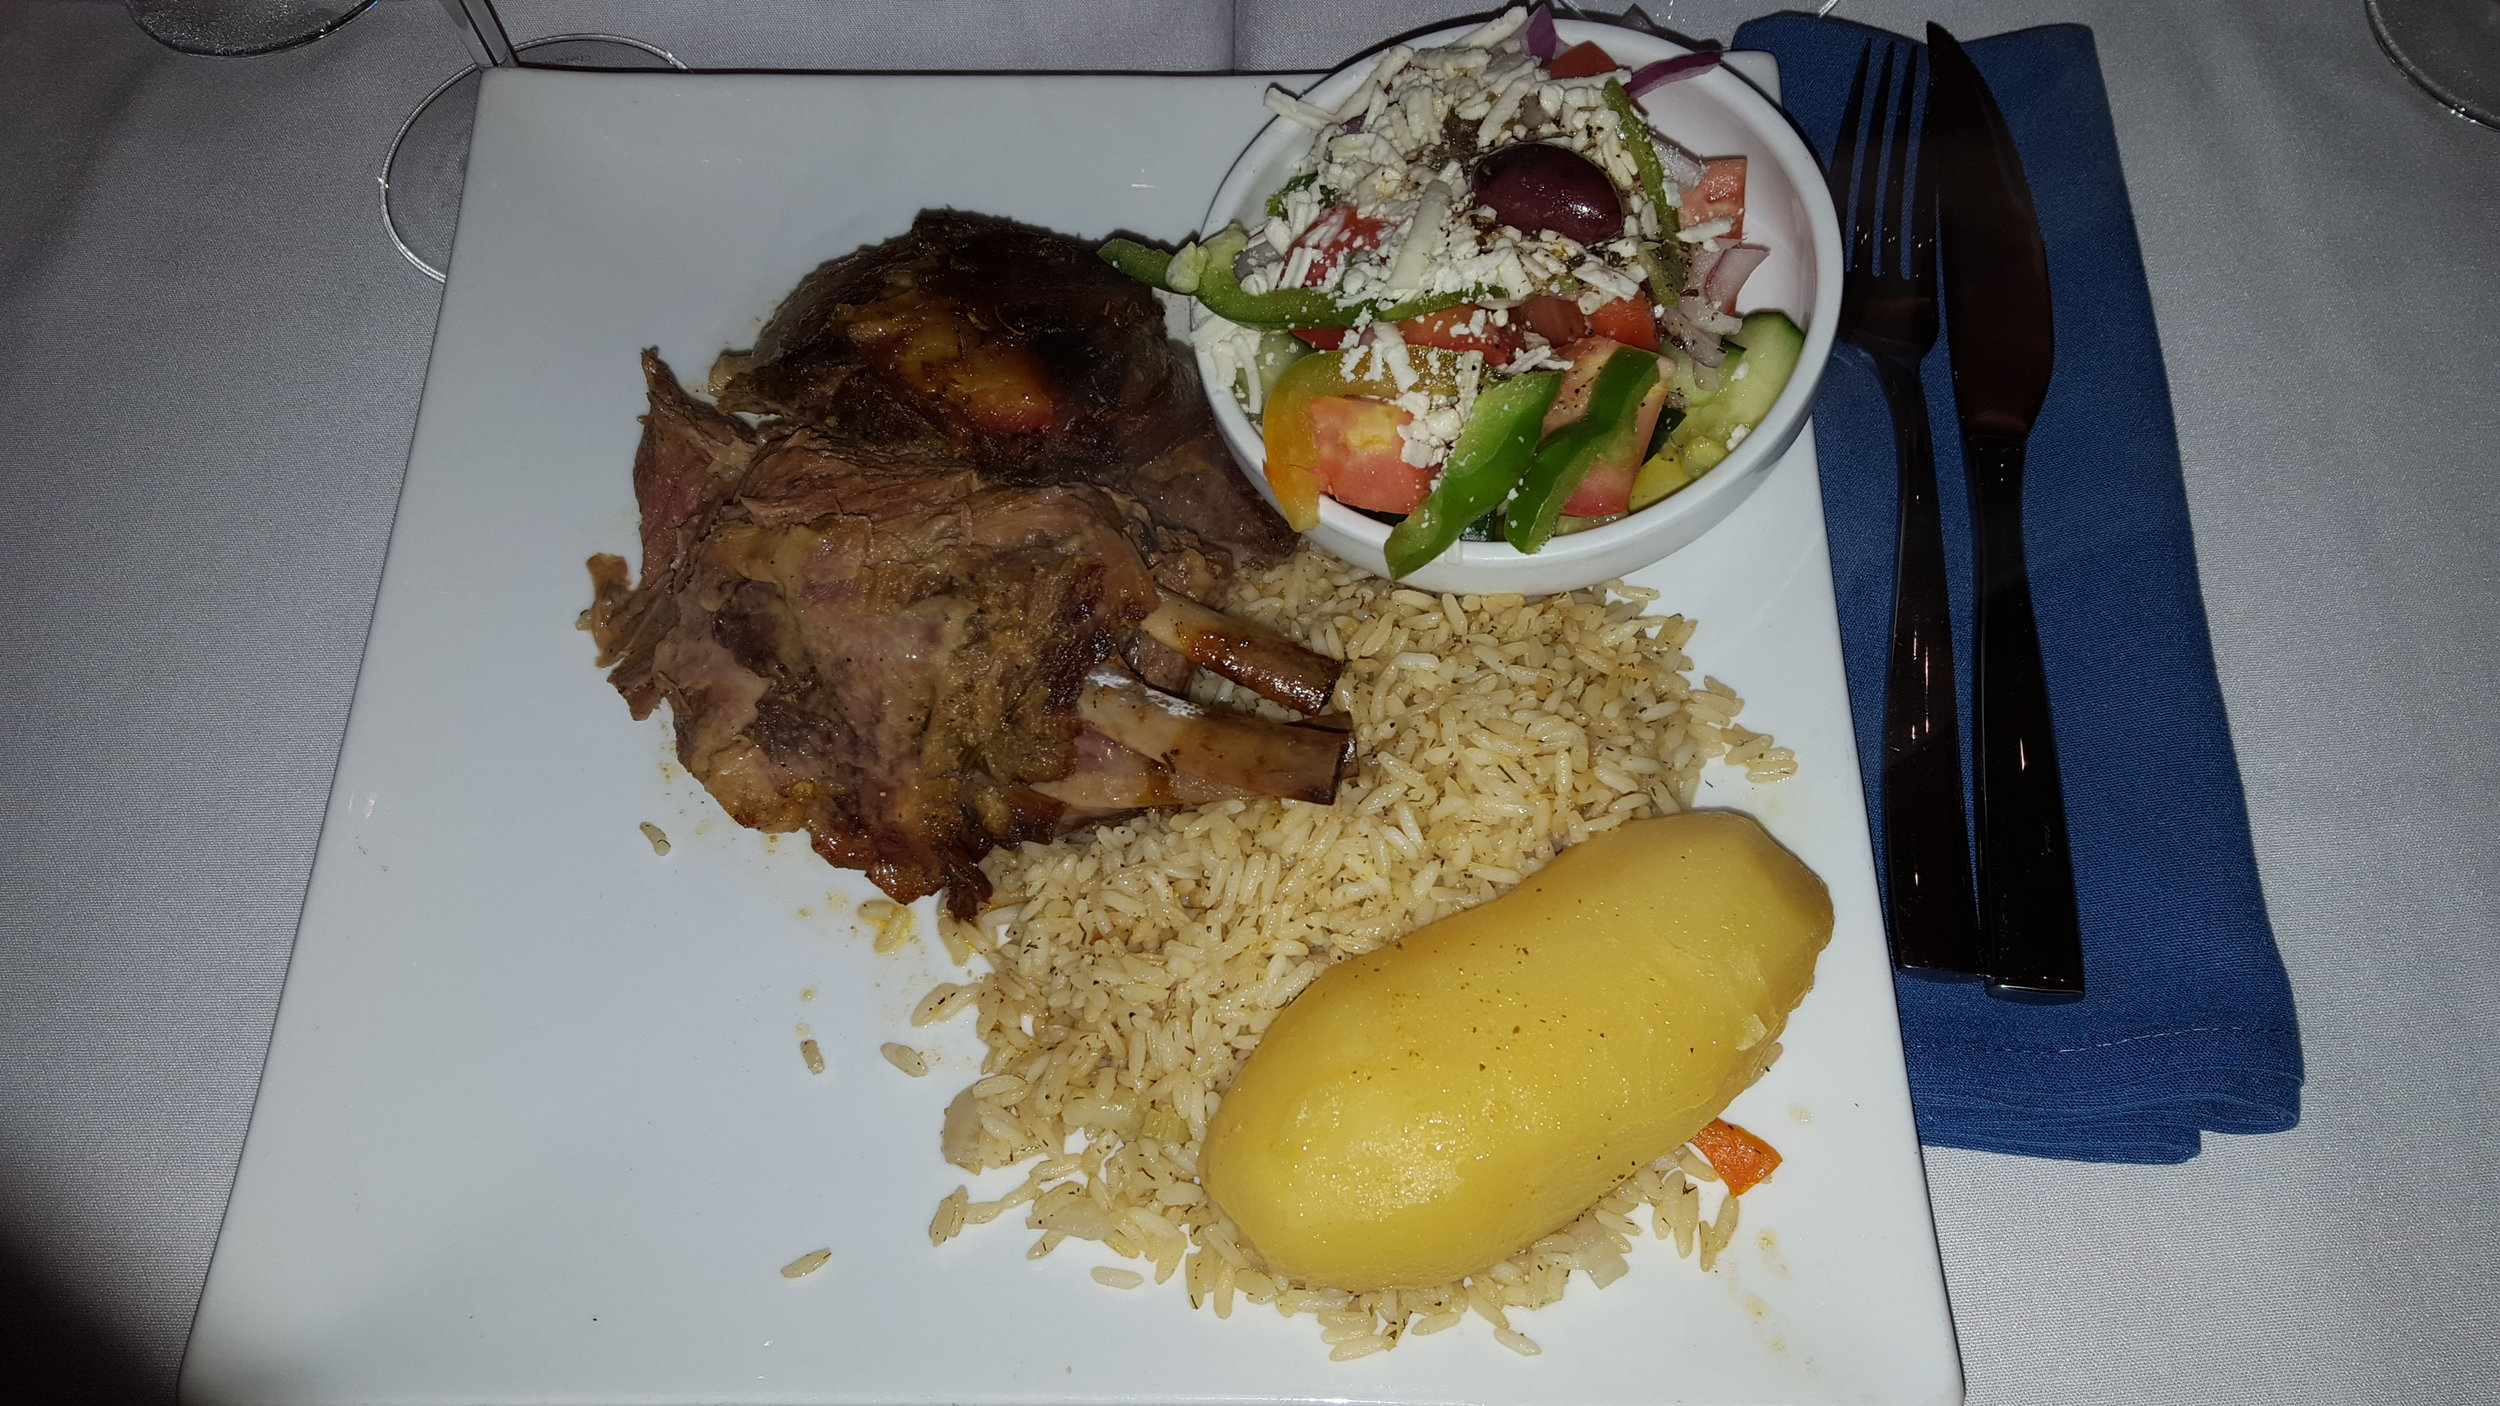 Greek food is famous in Vancouver. Very delicious!